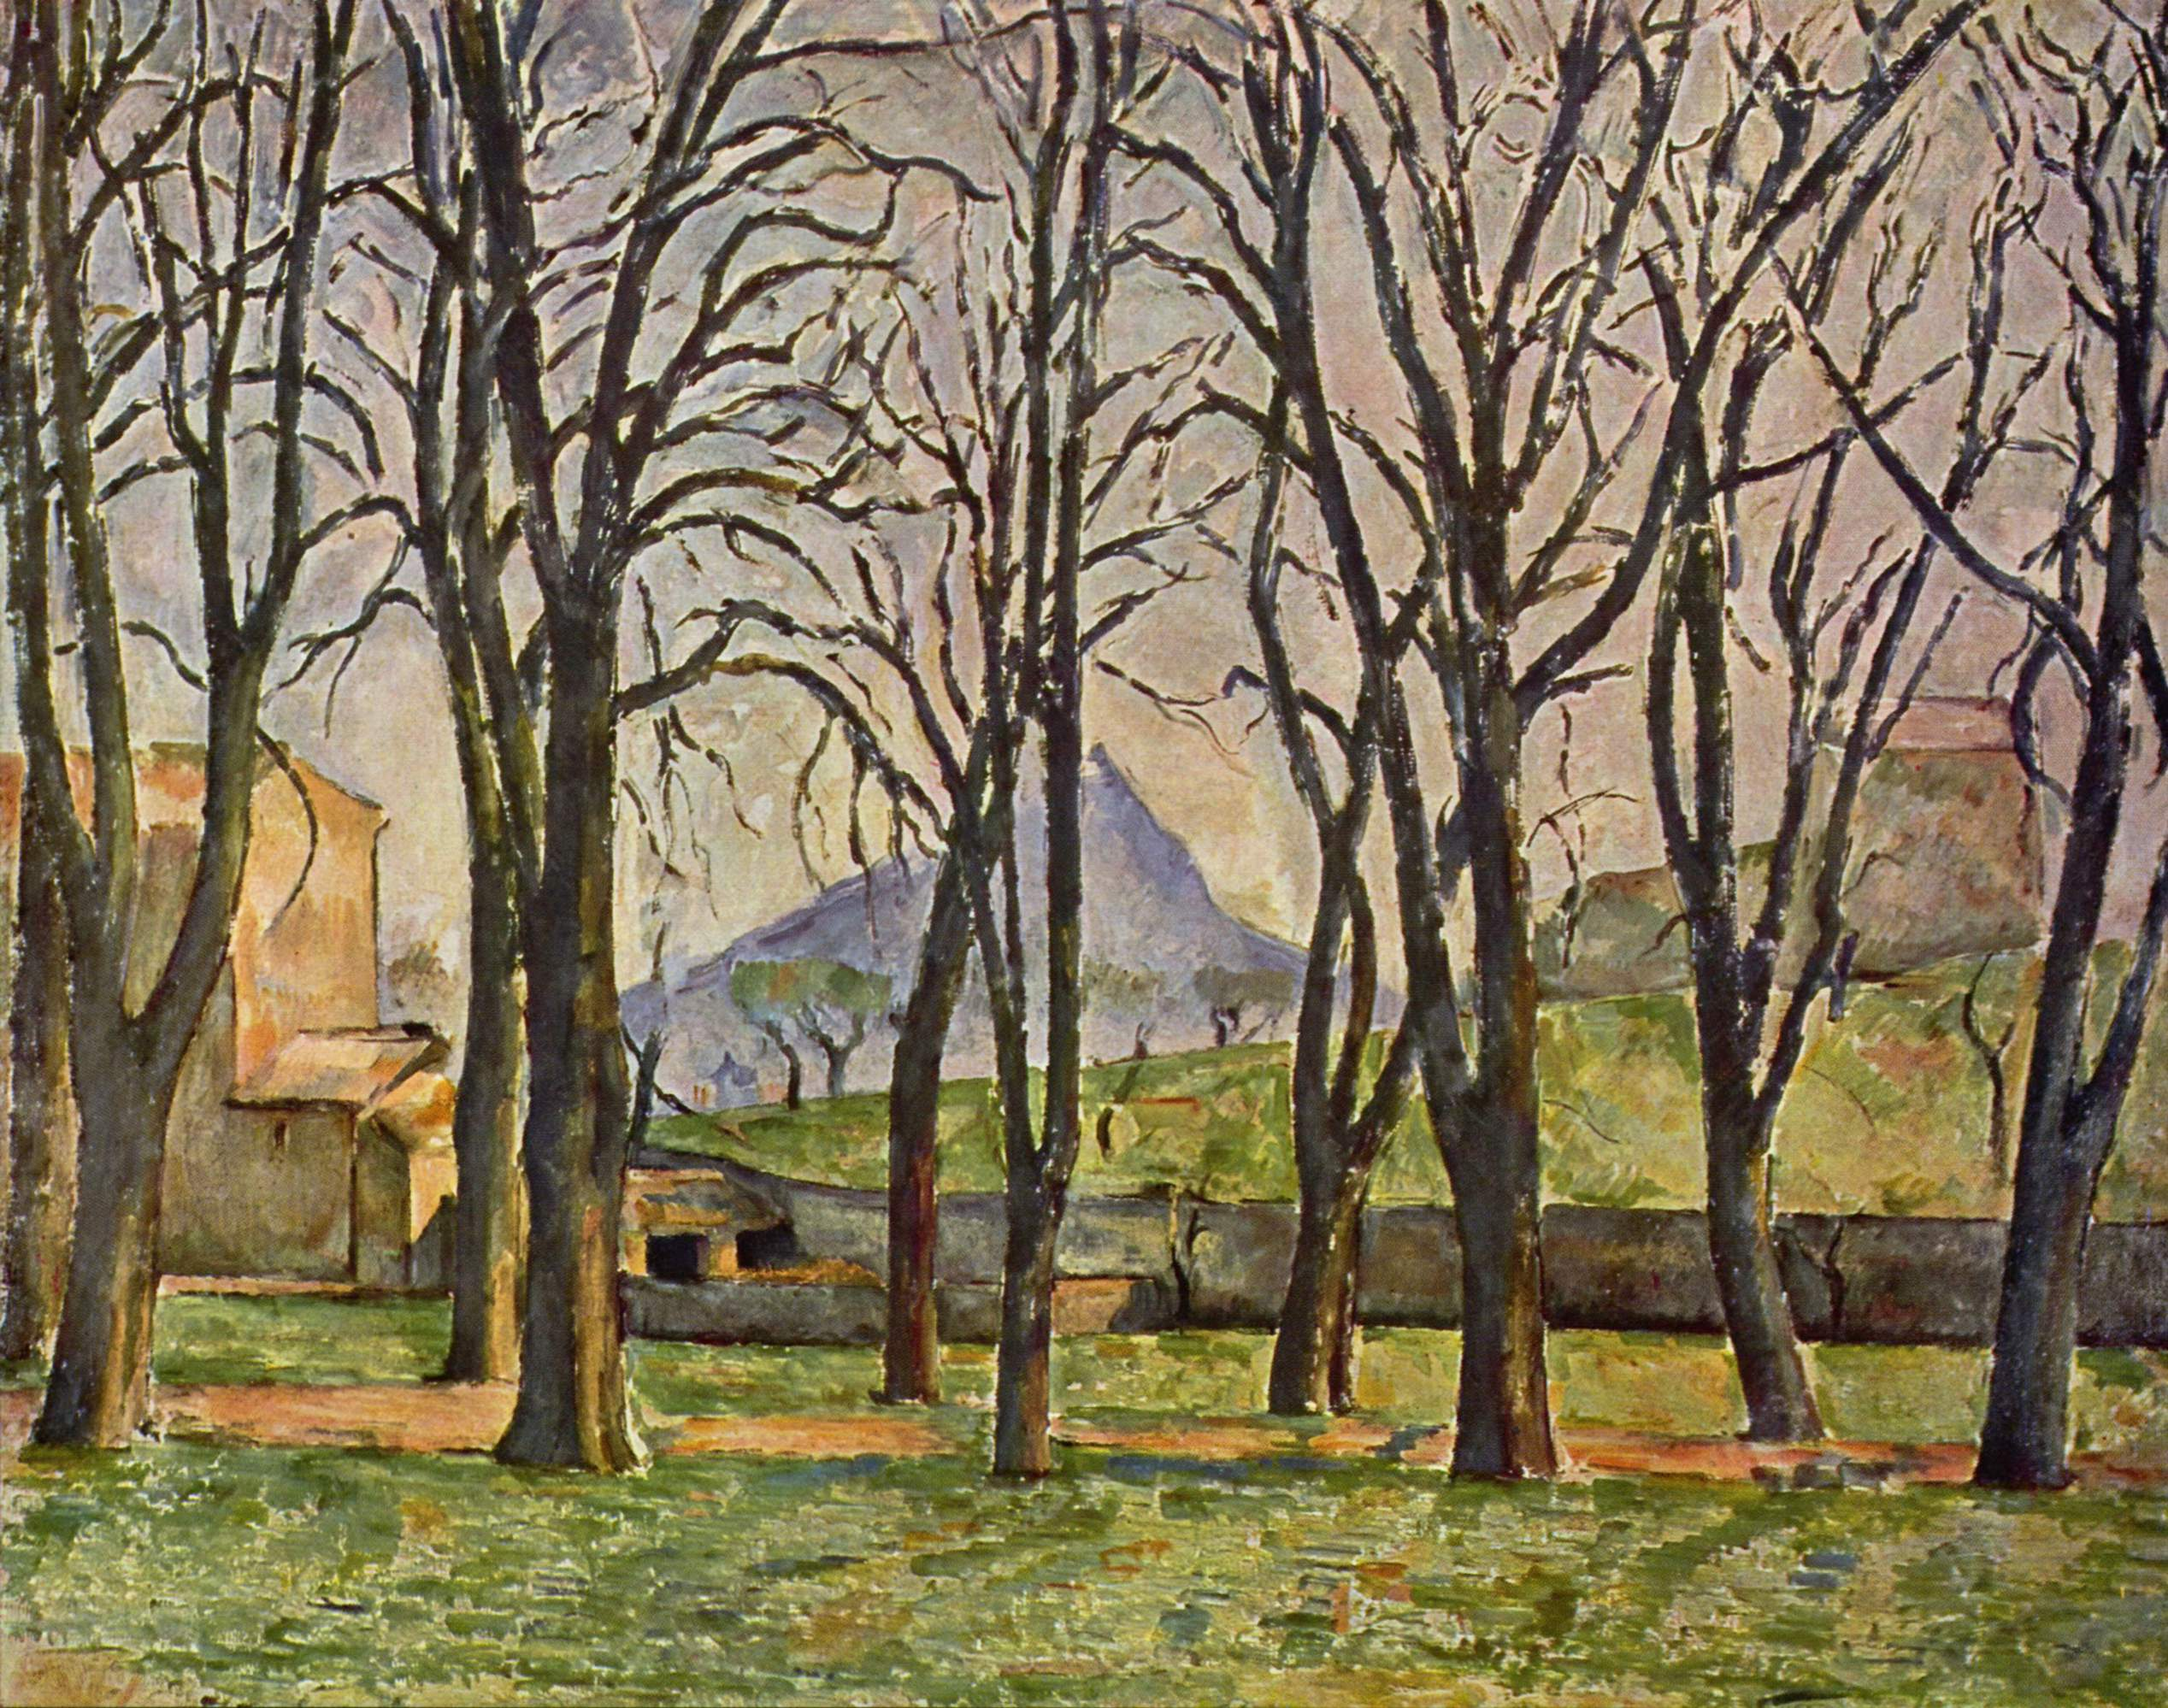 cezanne essay late work List of paintings by paul cézanne jump to navigation jump to search paul cézanne this list of paintings by the french painter paul cézanne is incomplete the.